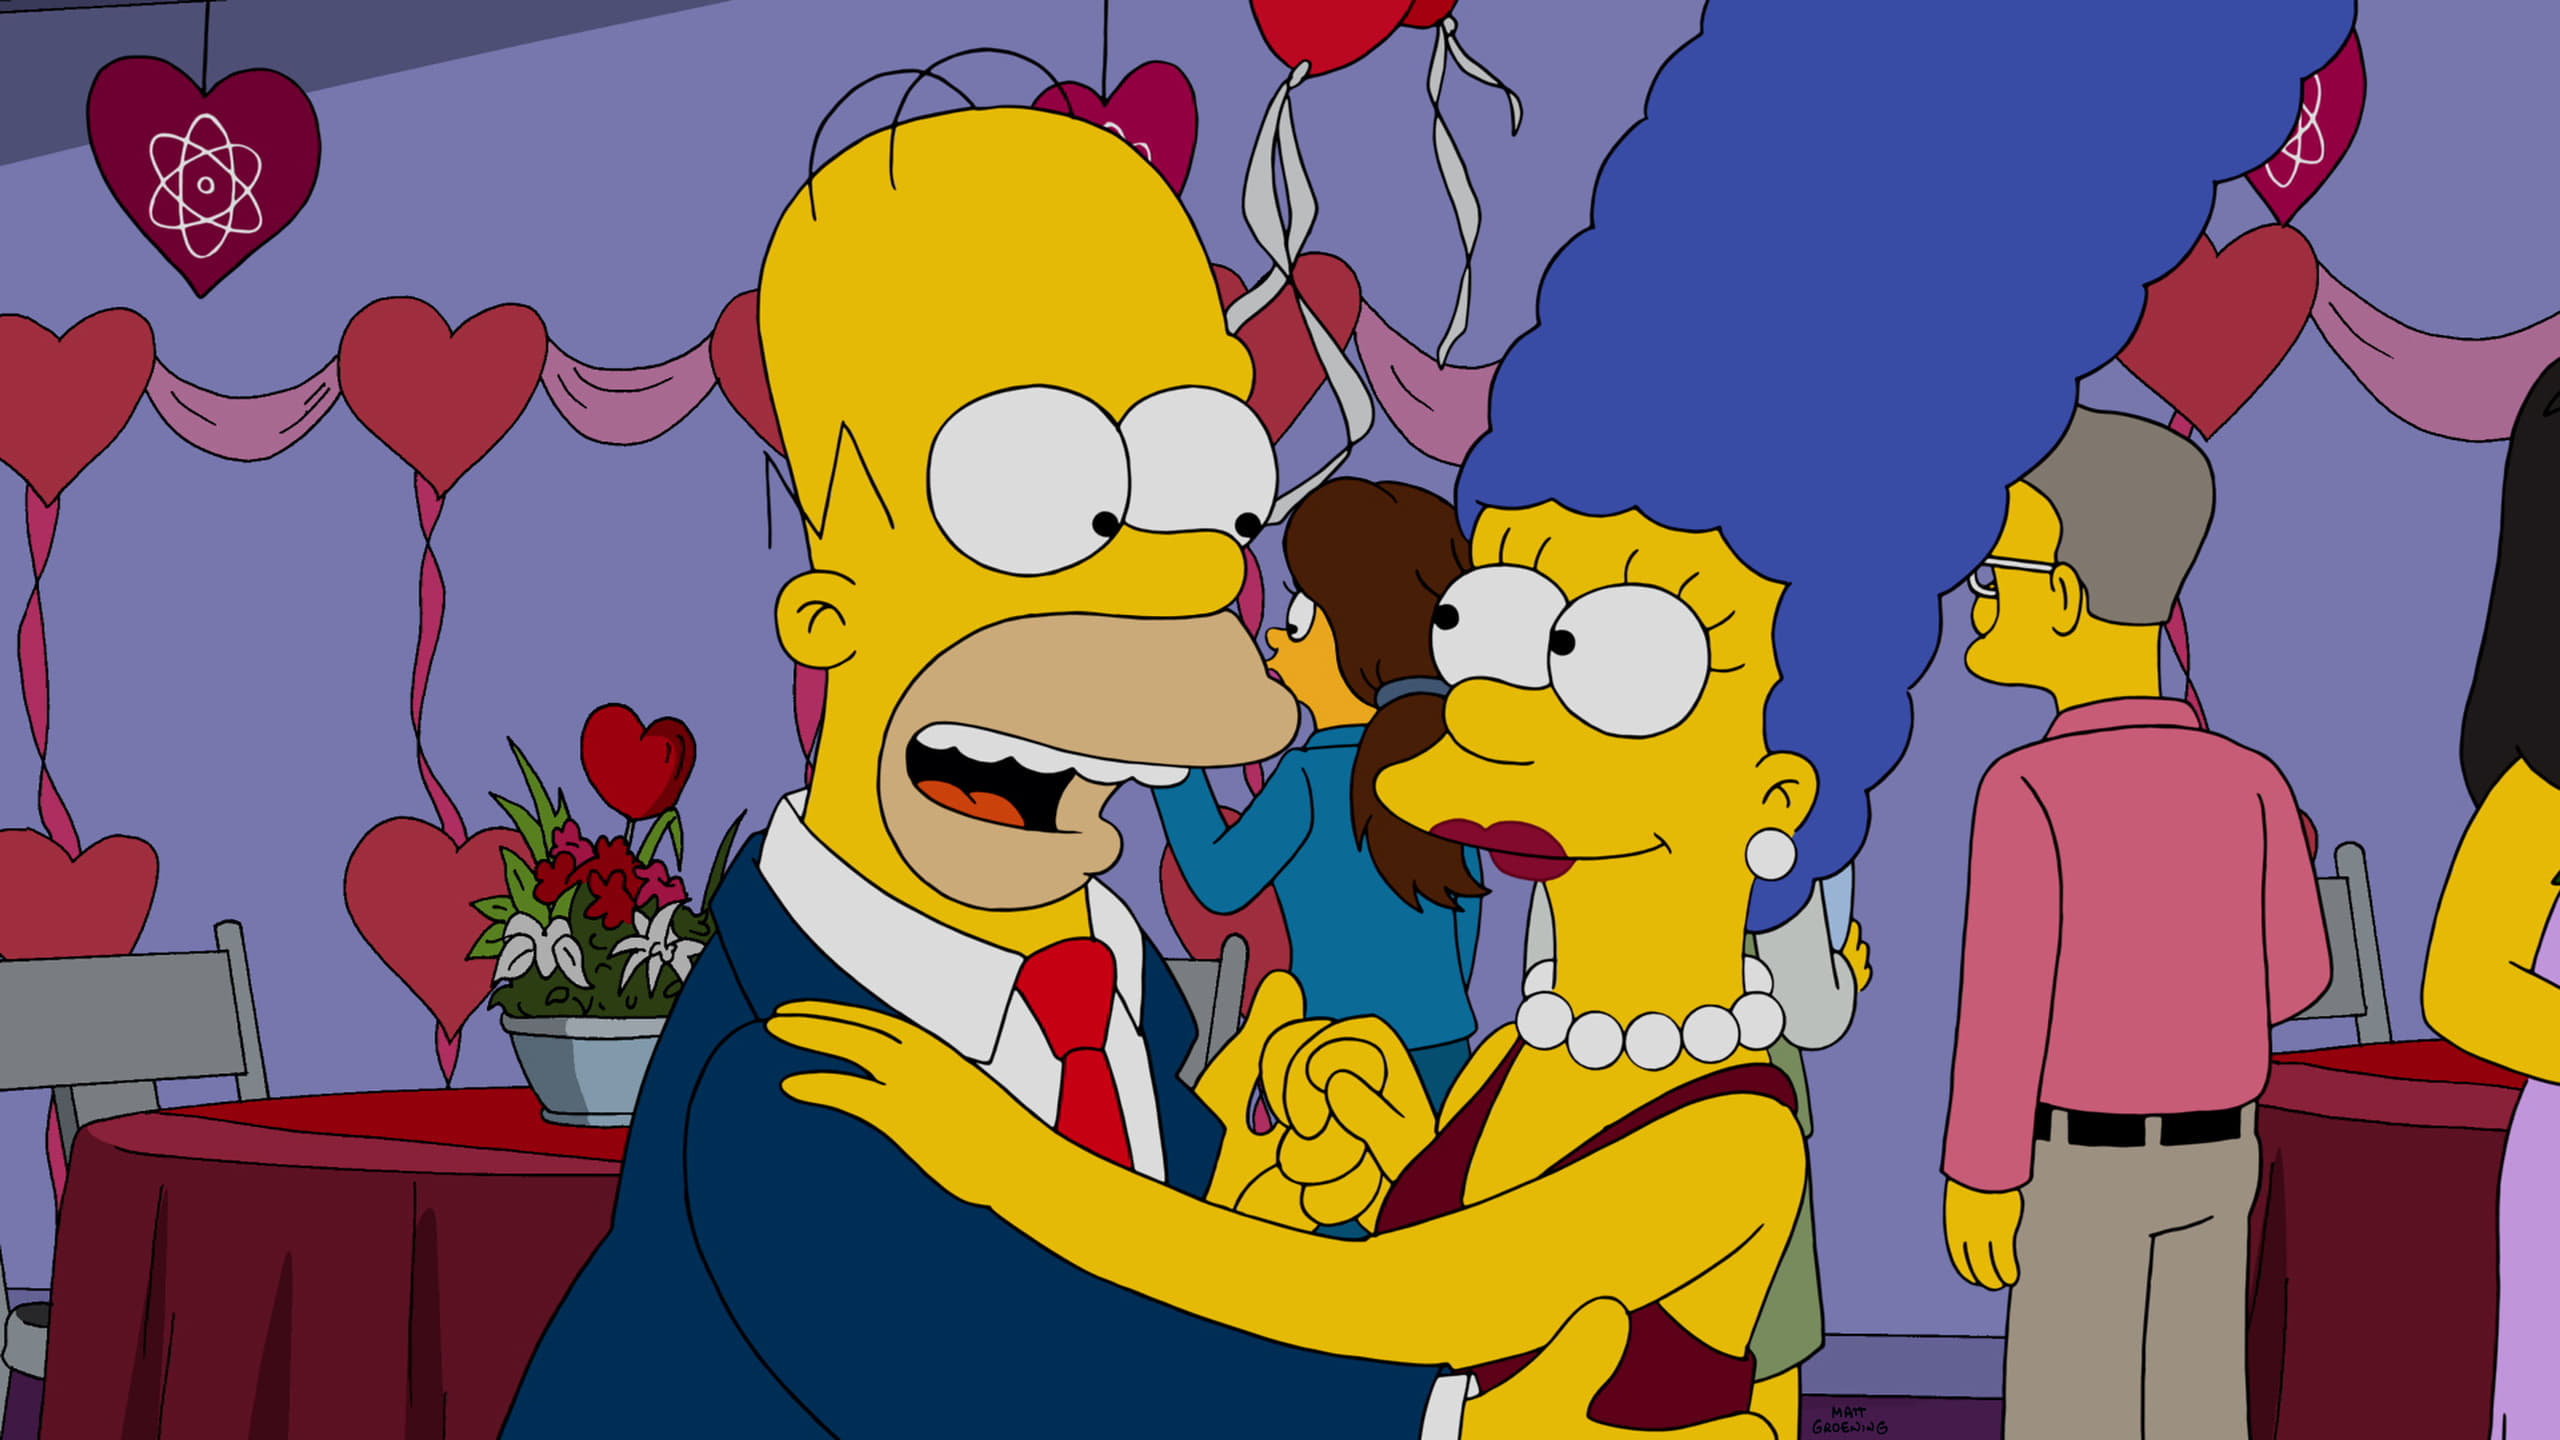 The Simpsons Season 27 :Episode 13  Love is in the N2-O2-Ar-CO2-Ne-He-CH4